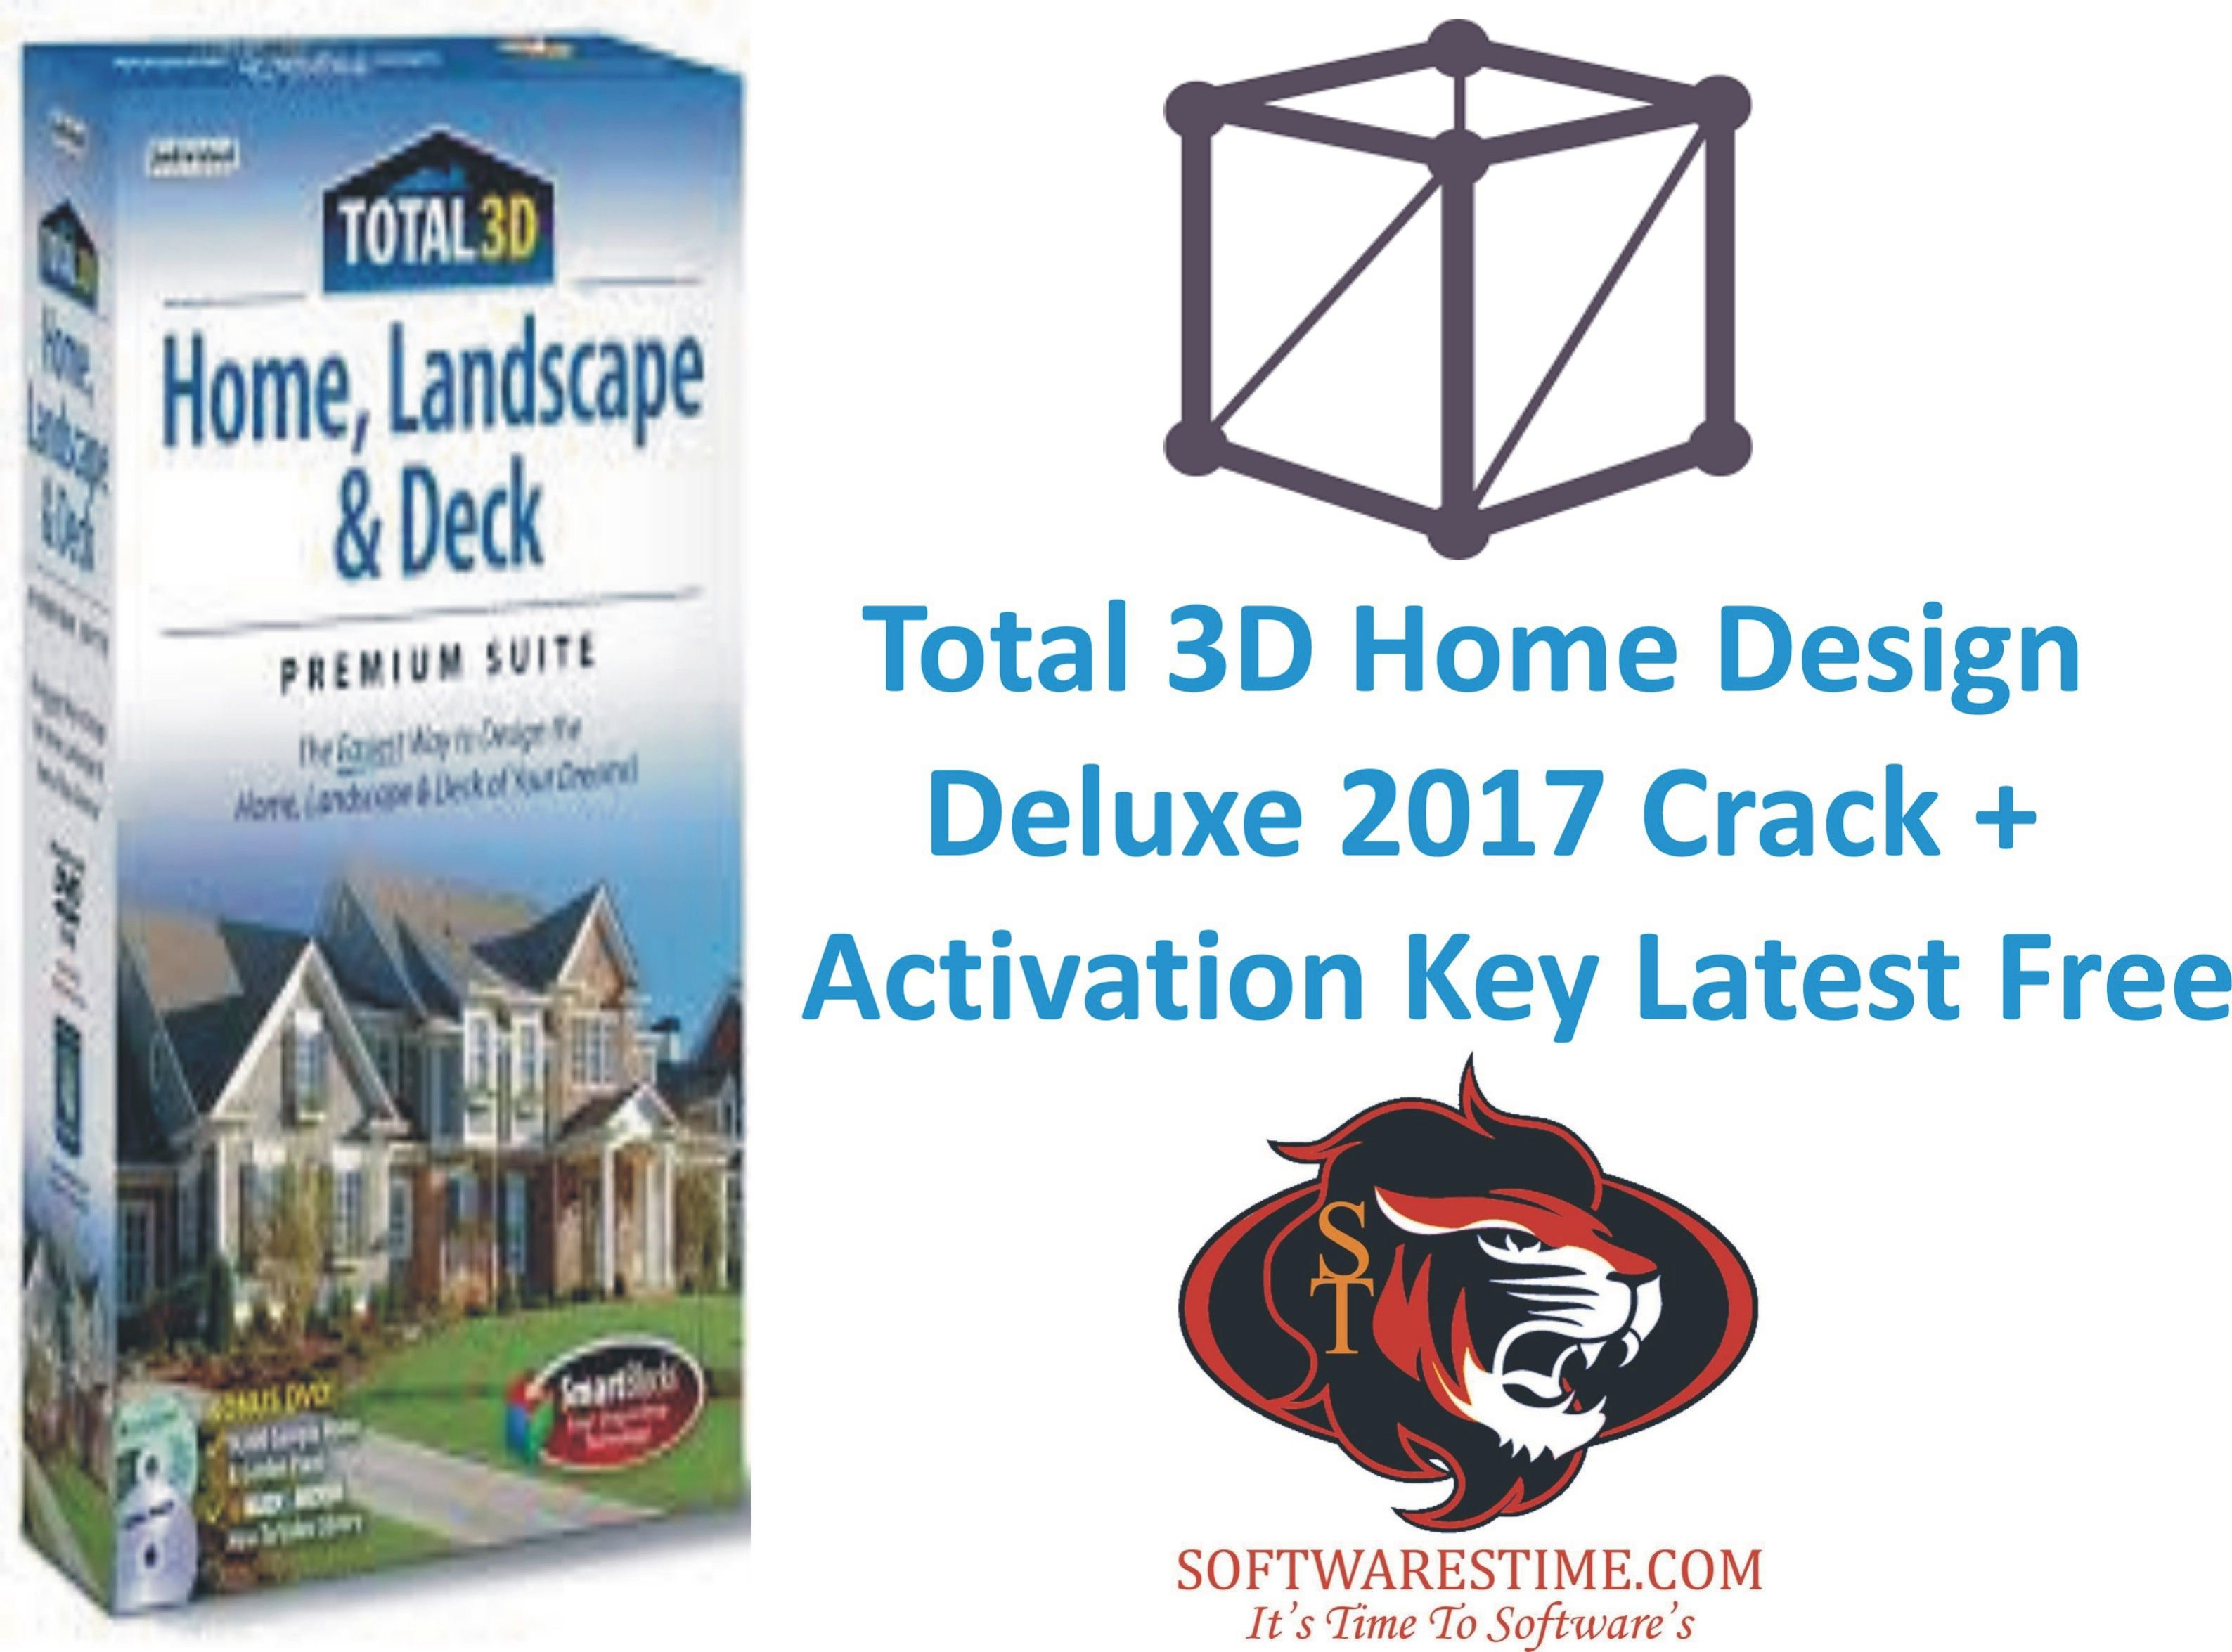 Superb Total 3D Home Design Deluxe 2017 Crack + Activation Key Latest Free,Total  3D Home